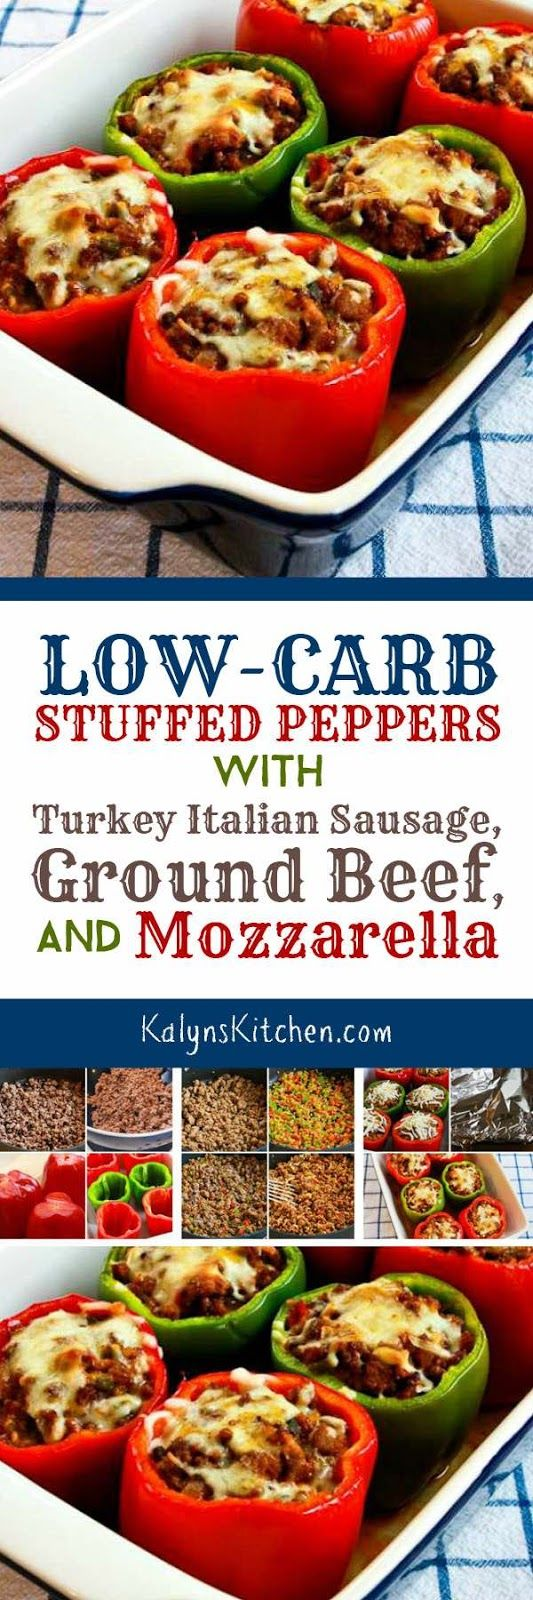 Low Carb Stuffed Peppers With Italian Sausage Ground Beef And Mozzarella Recipe Low Carb